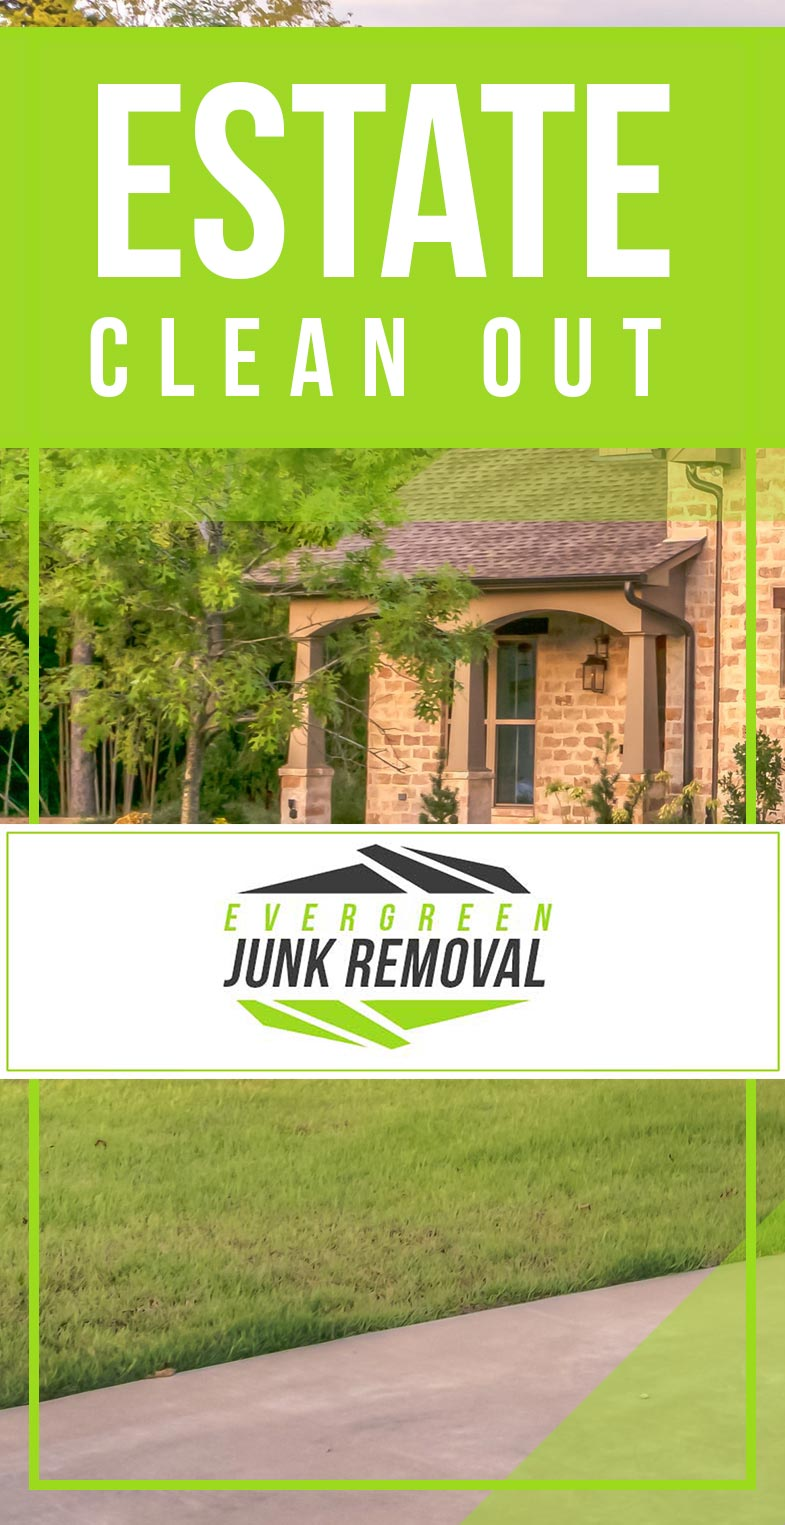 Junk Removal South Palm Beach Estate Clean Out